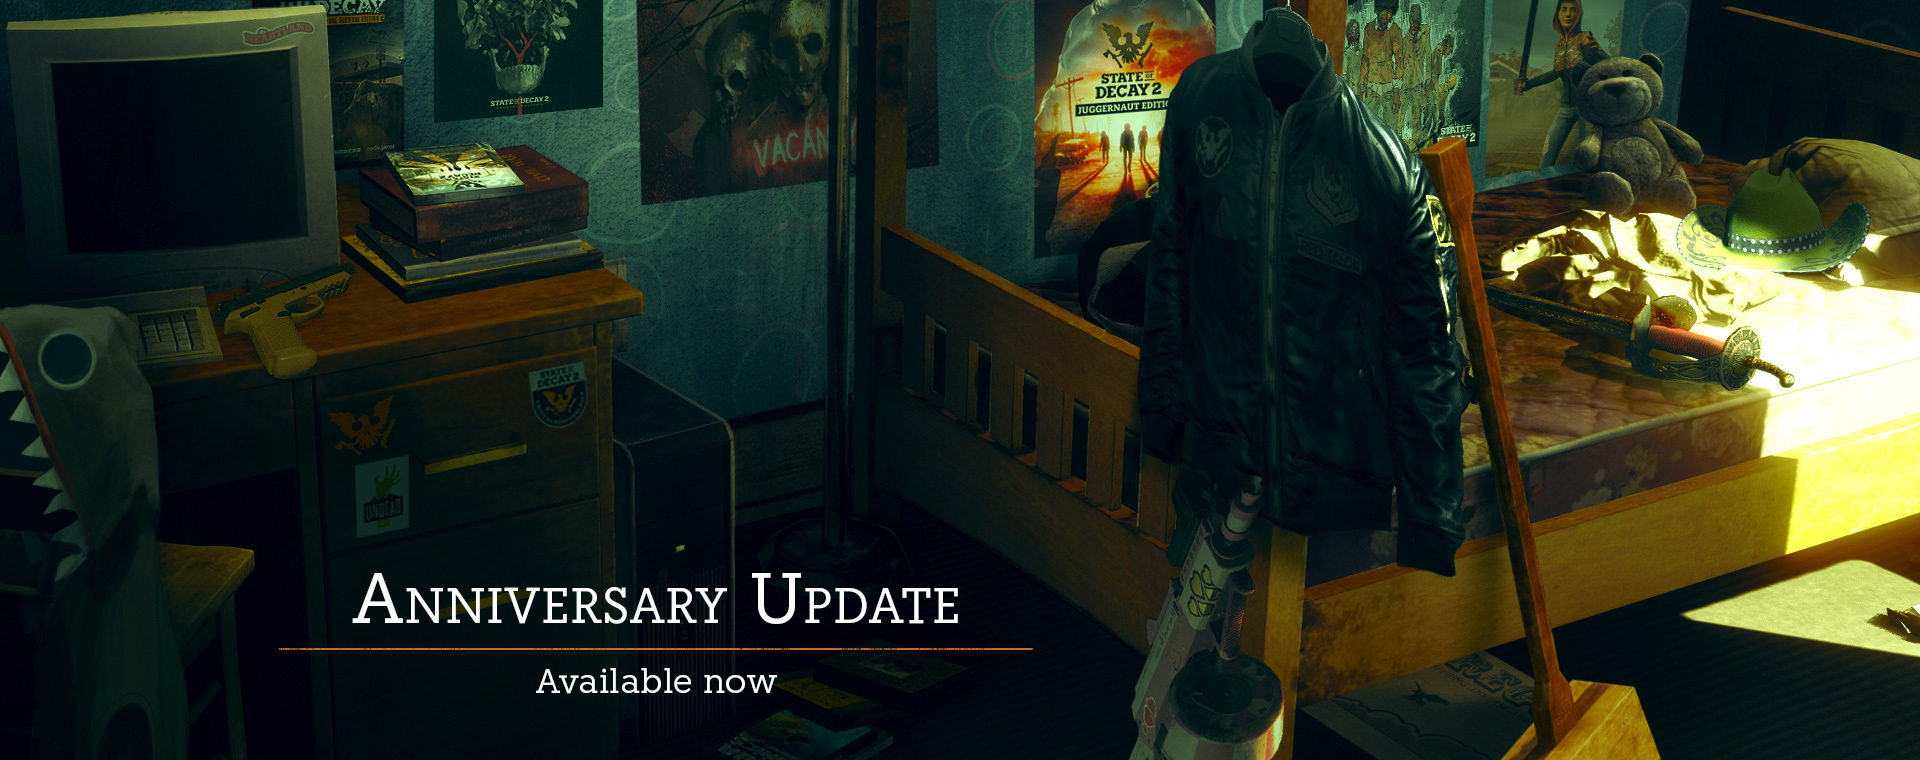 State of Decay 2. Anniversary update.